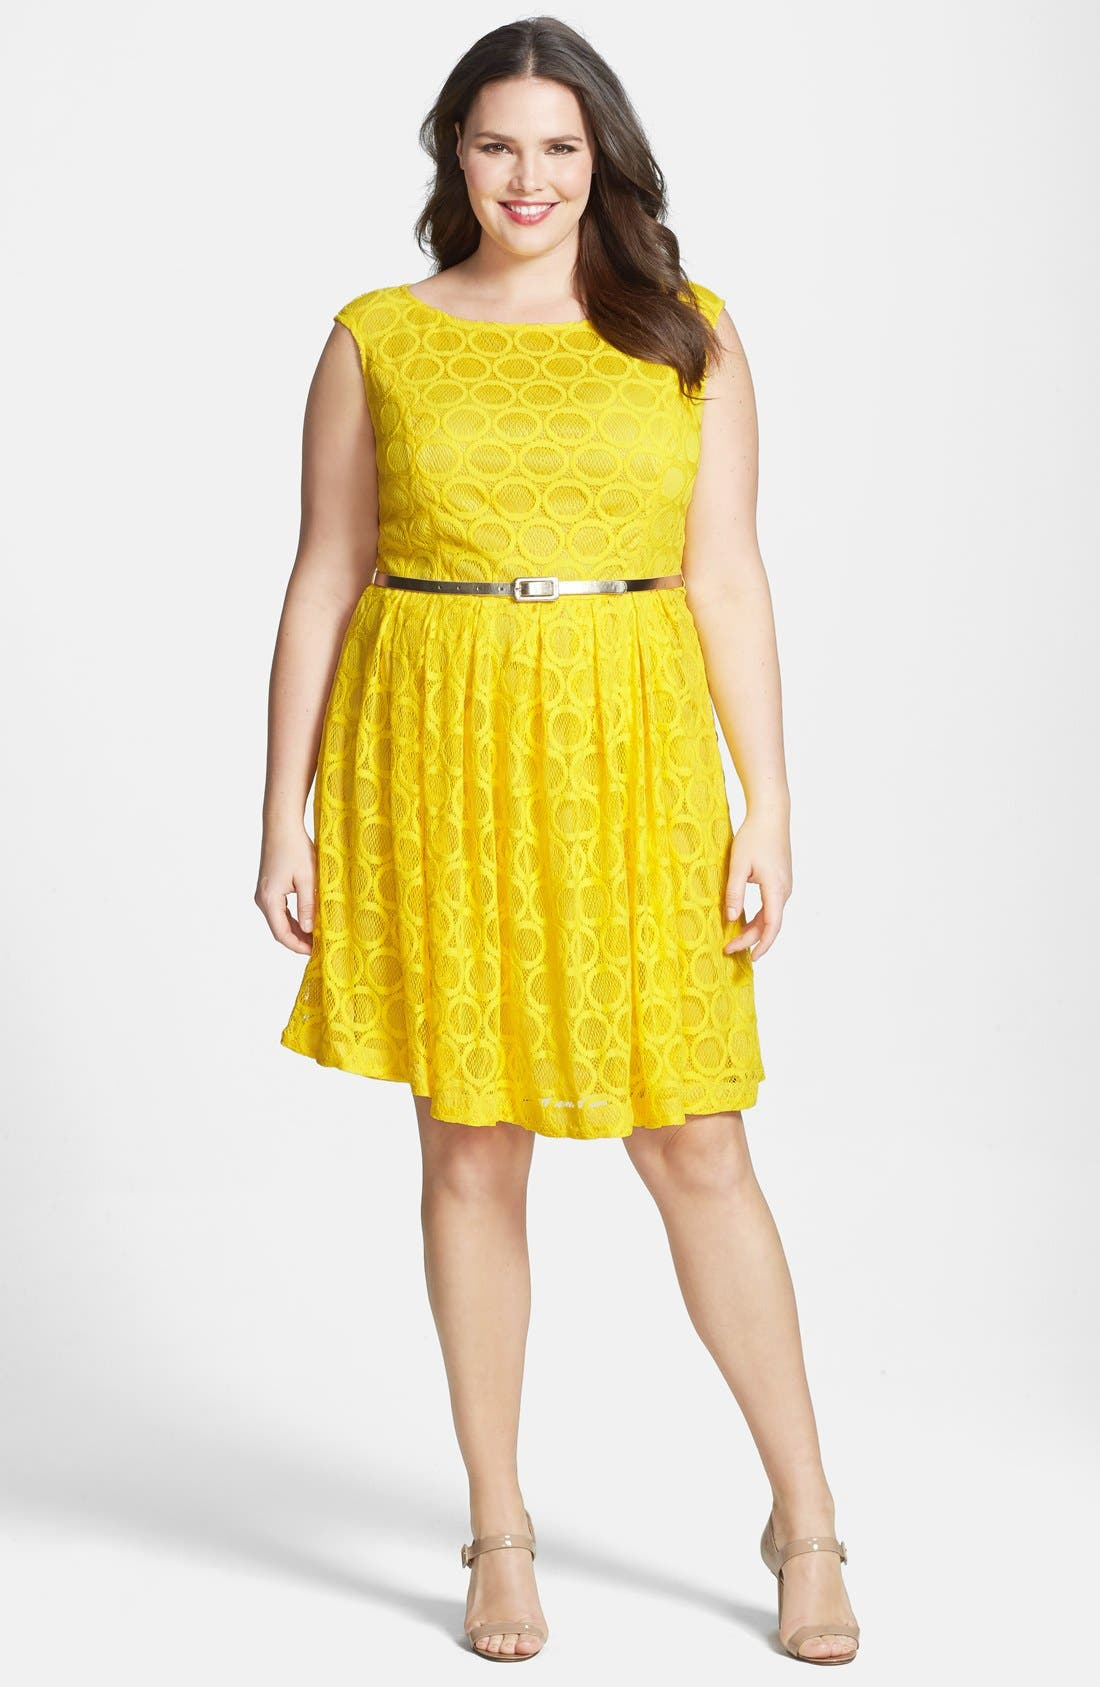 Alternate Image 1 Selected - London Times 'Circle' Lace Fit & Flare Dress (Plus Size)